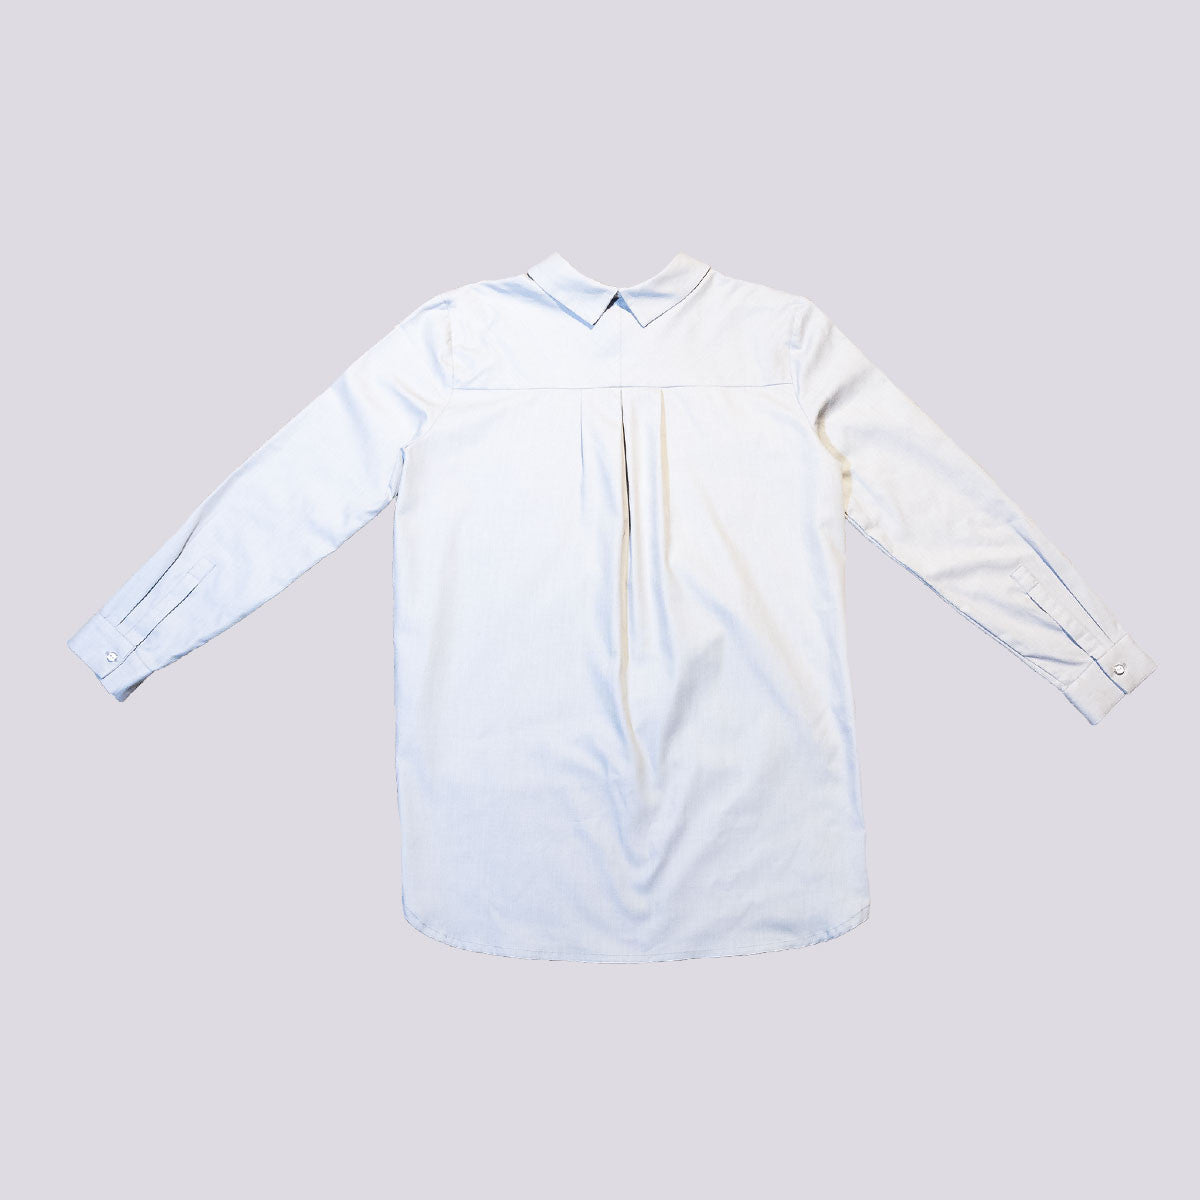 Fallbrents Womens Shirt